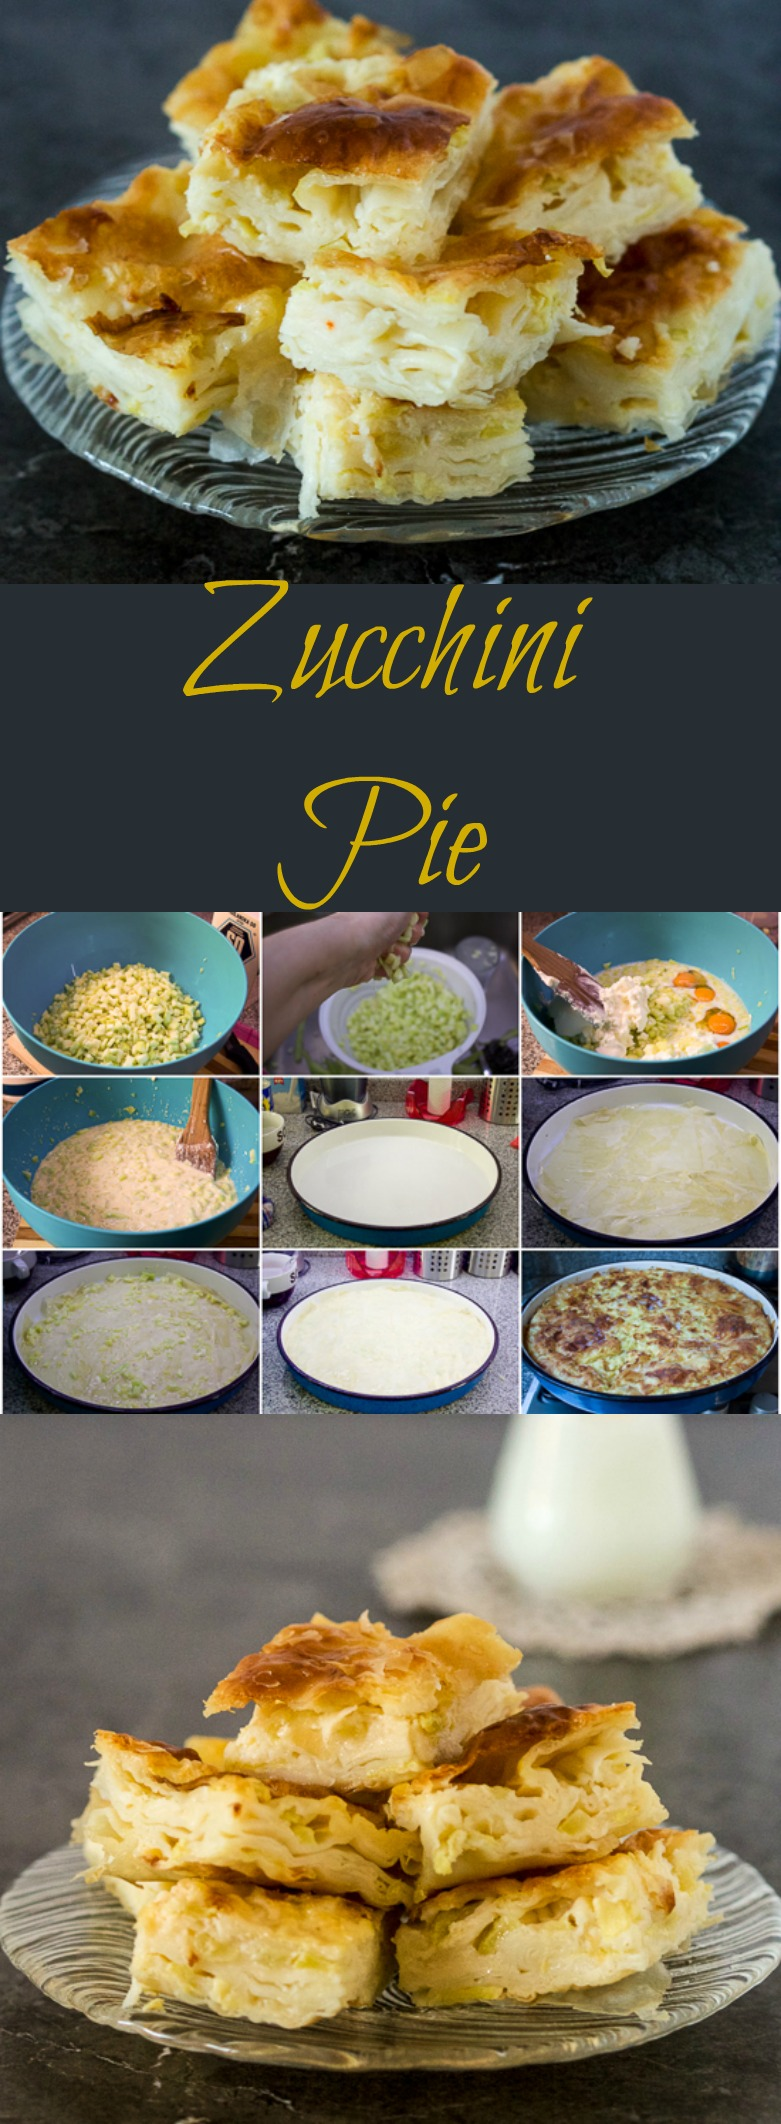 Zucchini pie is a savory pie with a refreshing kick, made with phyllo and zucchini cubes.